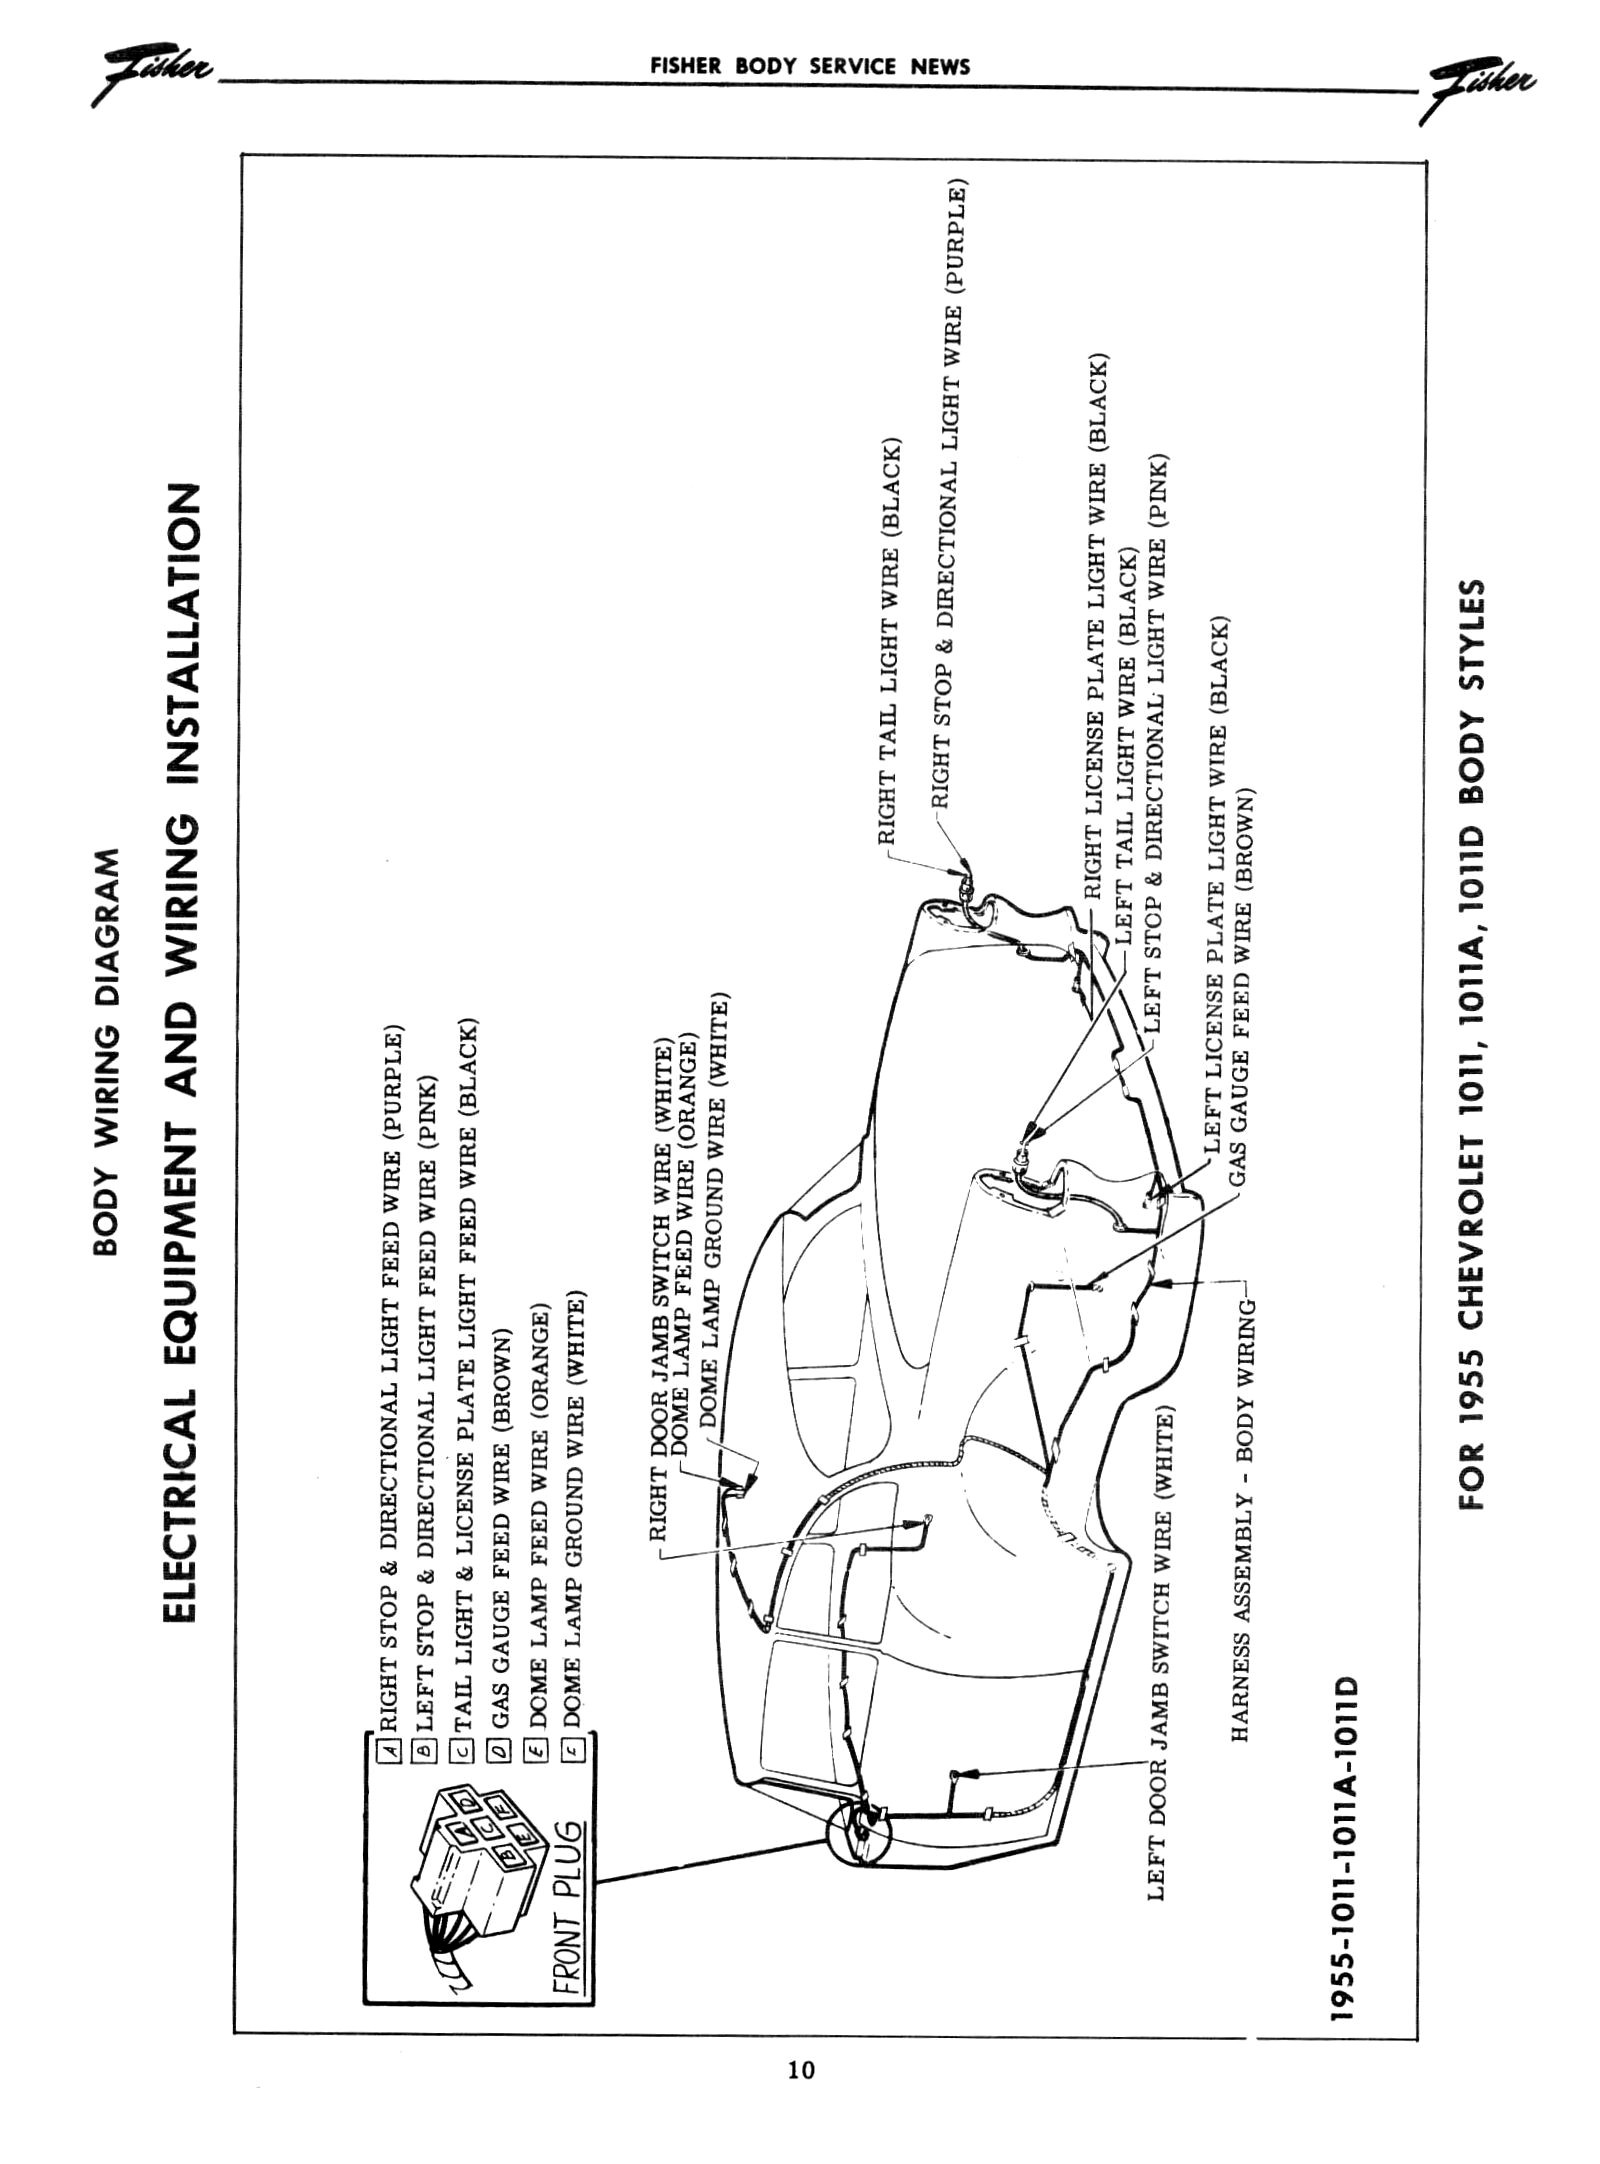 95 pontiac sunfire motor diagram